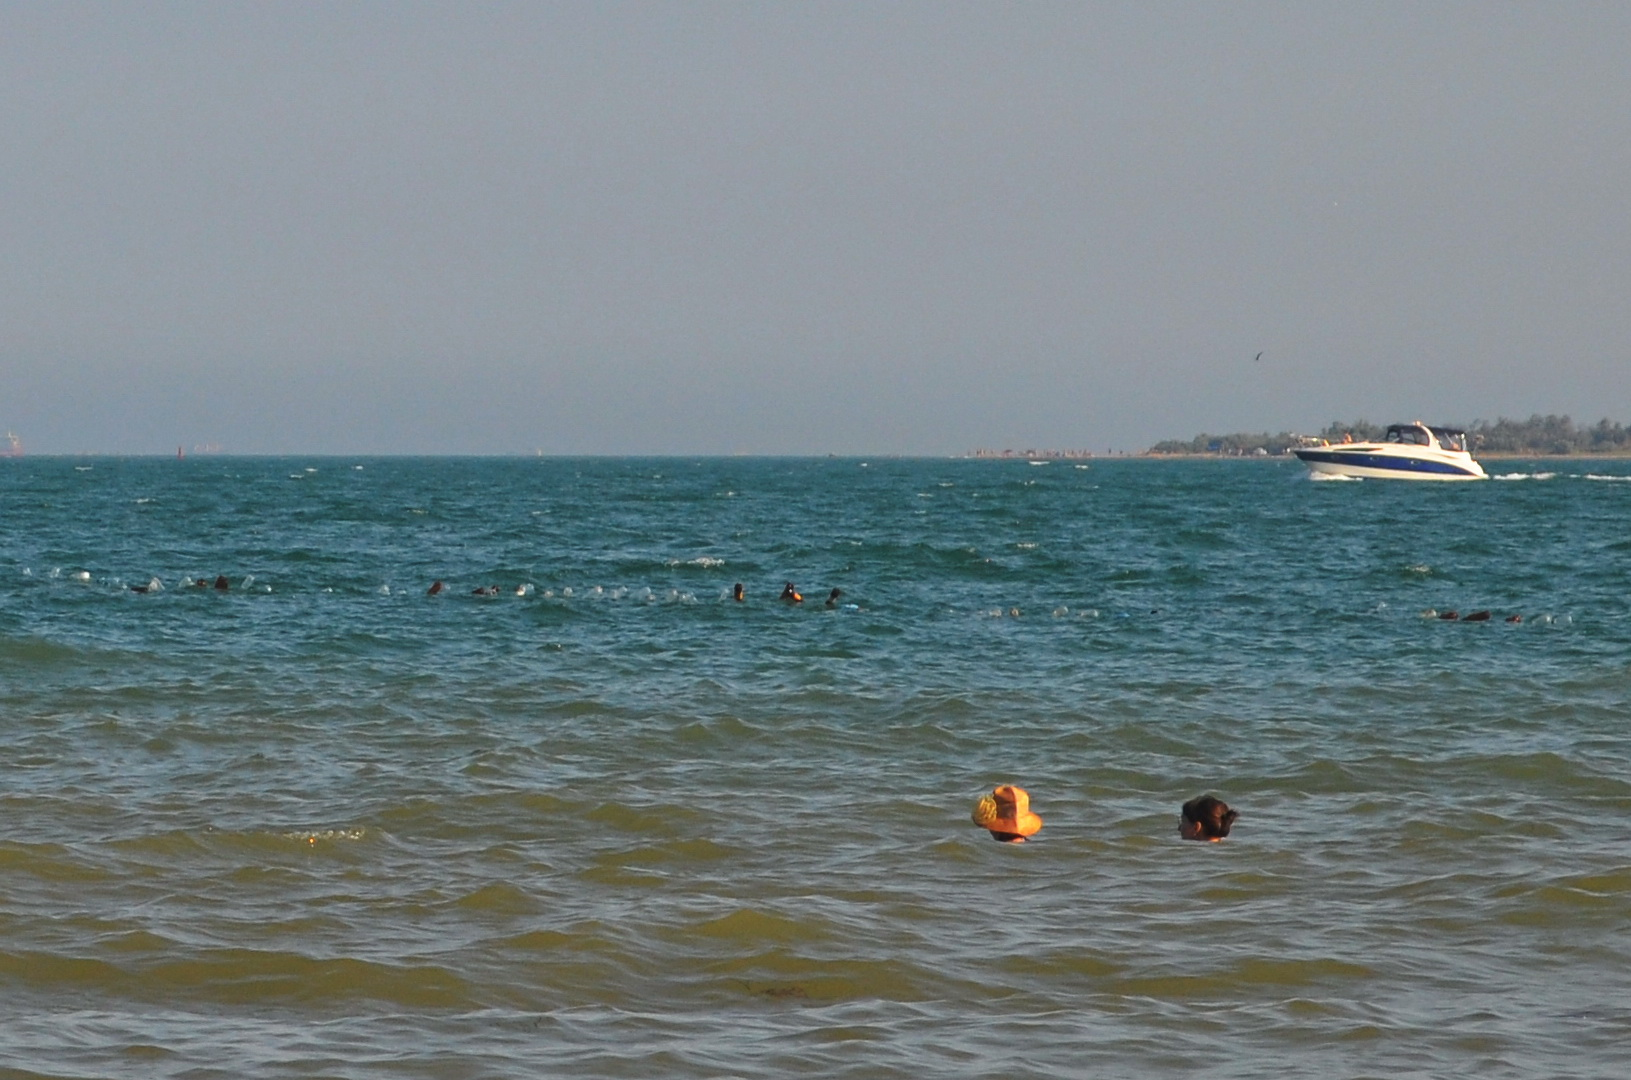 kerch arshinsevo beach 06 07 2020 9